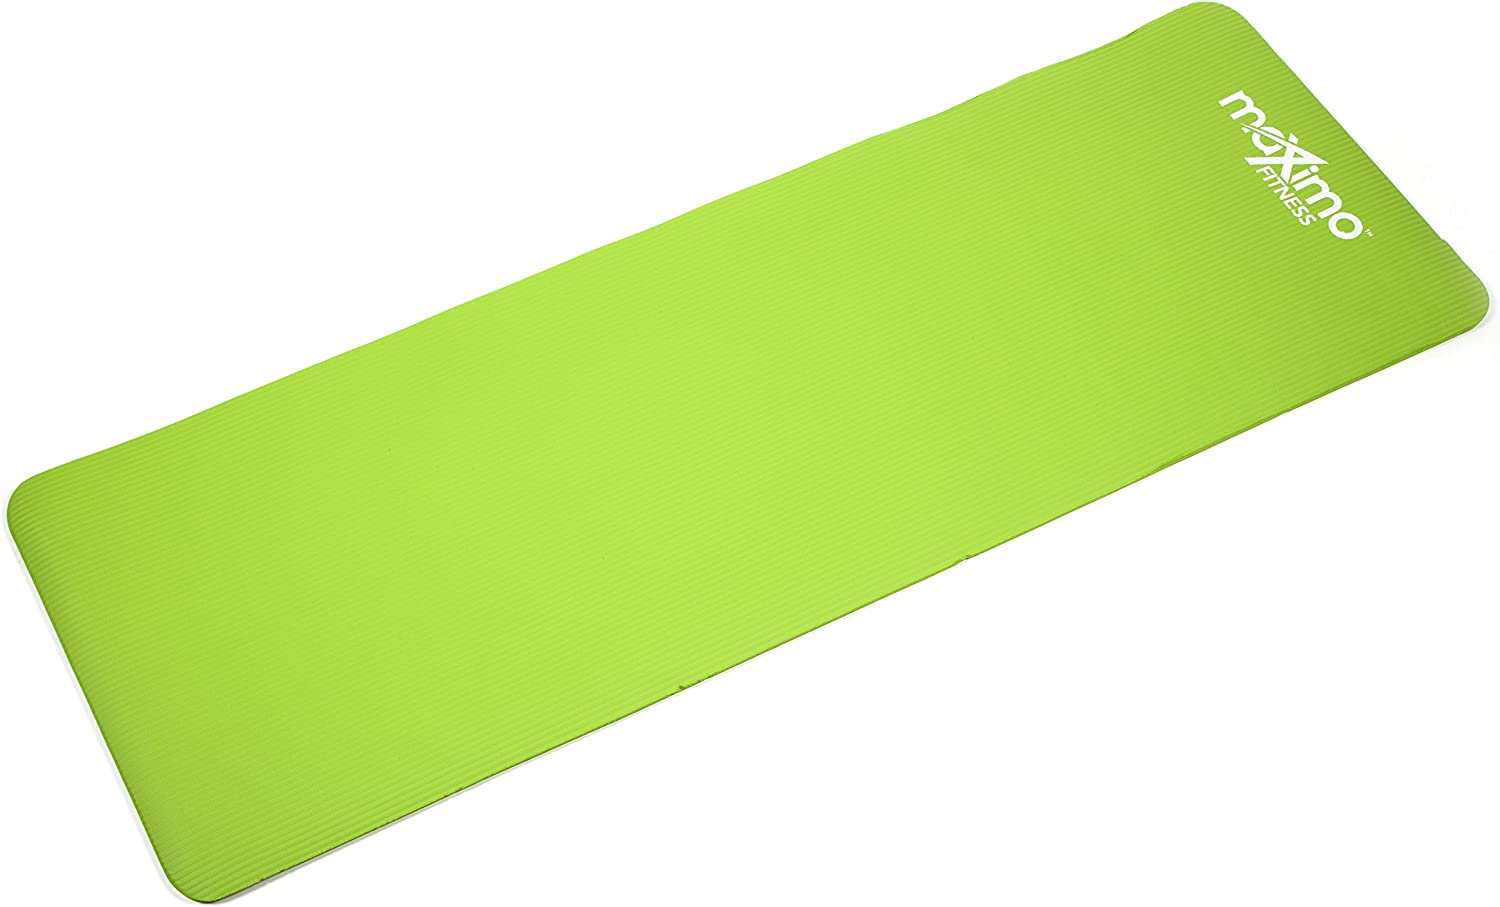 Sit-Ups Multi Purpose Pilates Gym Home 183 x 60 x 1.2 centimetres Perfect for Men and Women. Yoga Stretching Maximo Exercise Mat NBR Fitness Mat